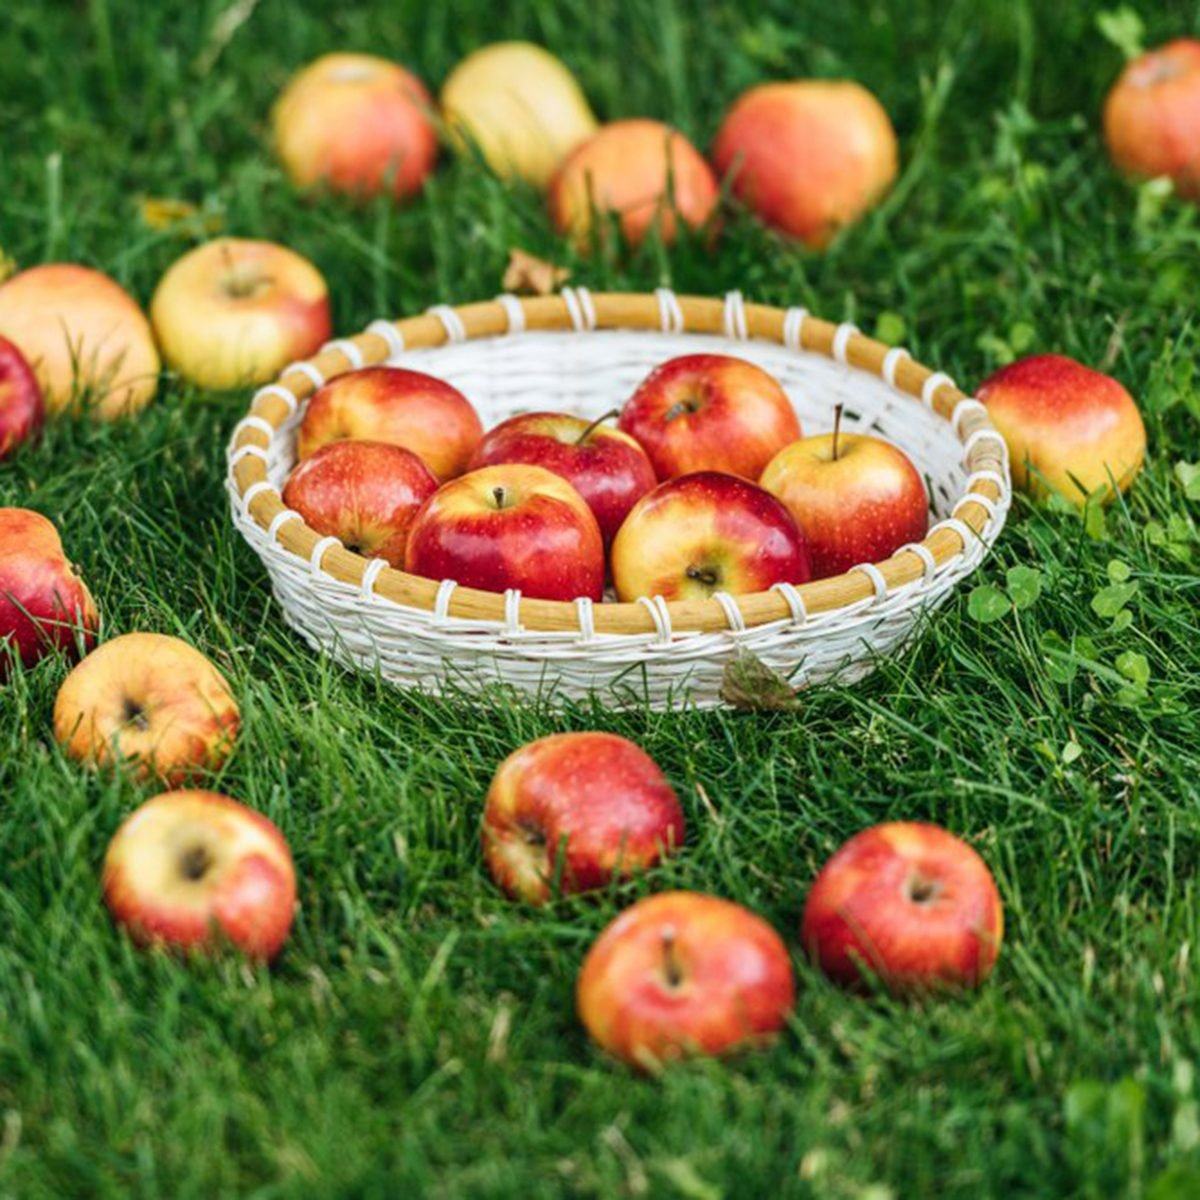 Apples on the ground and in a basket